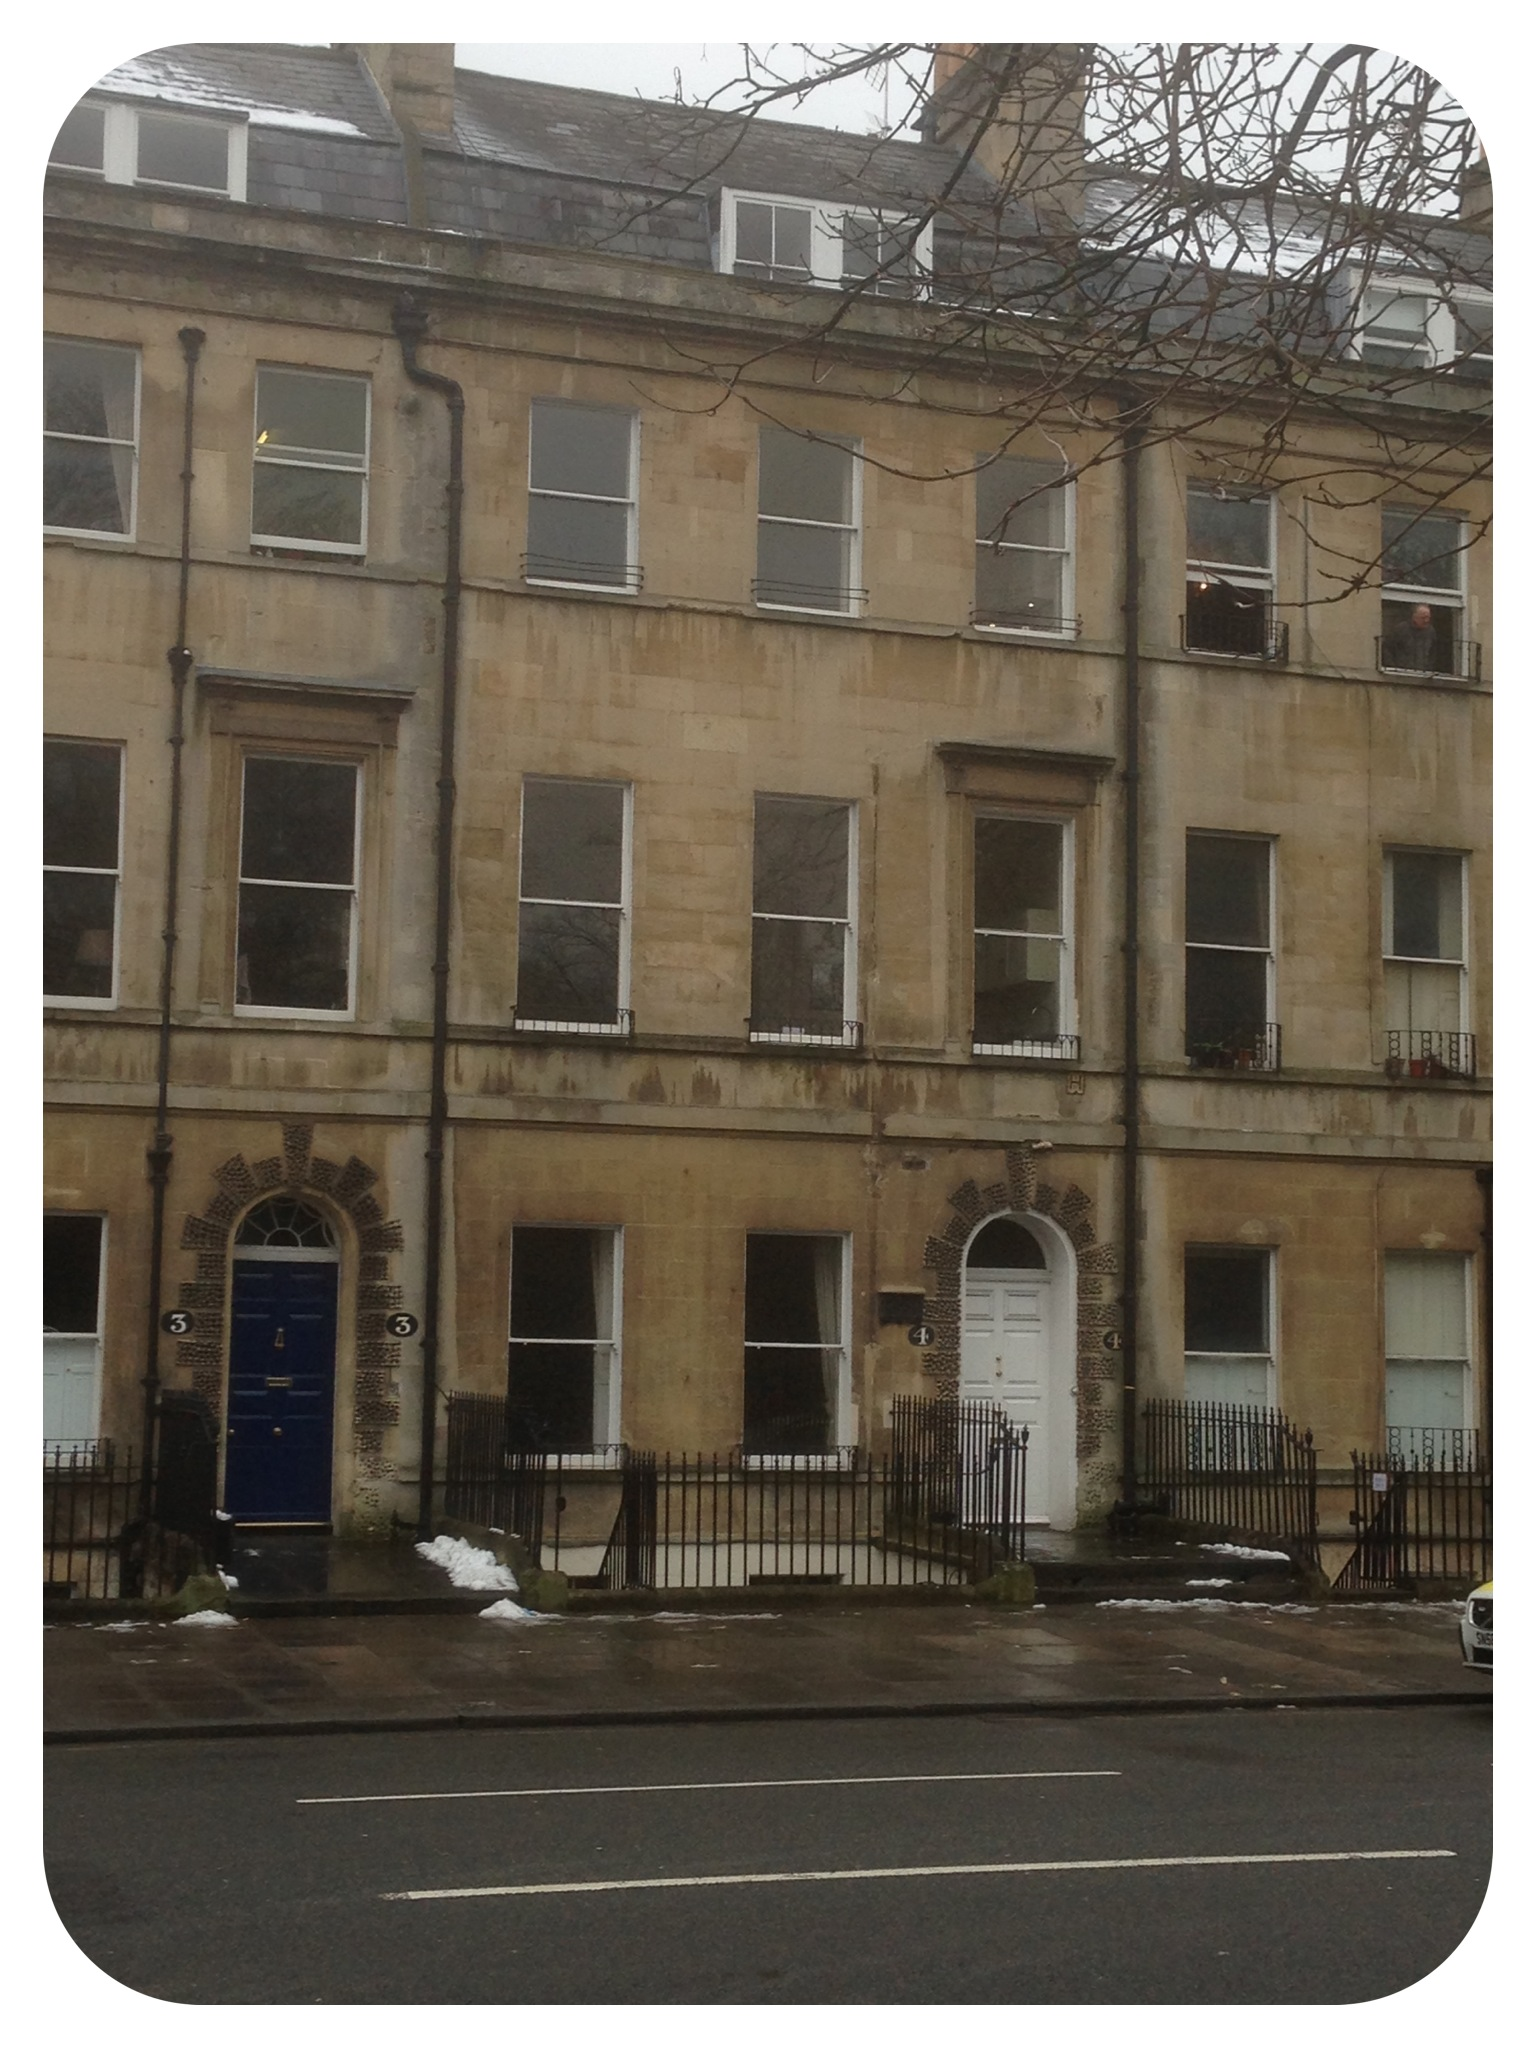 Jane Austen's House - Bath